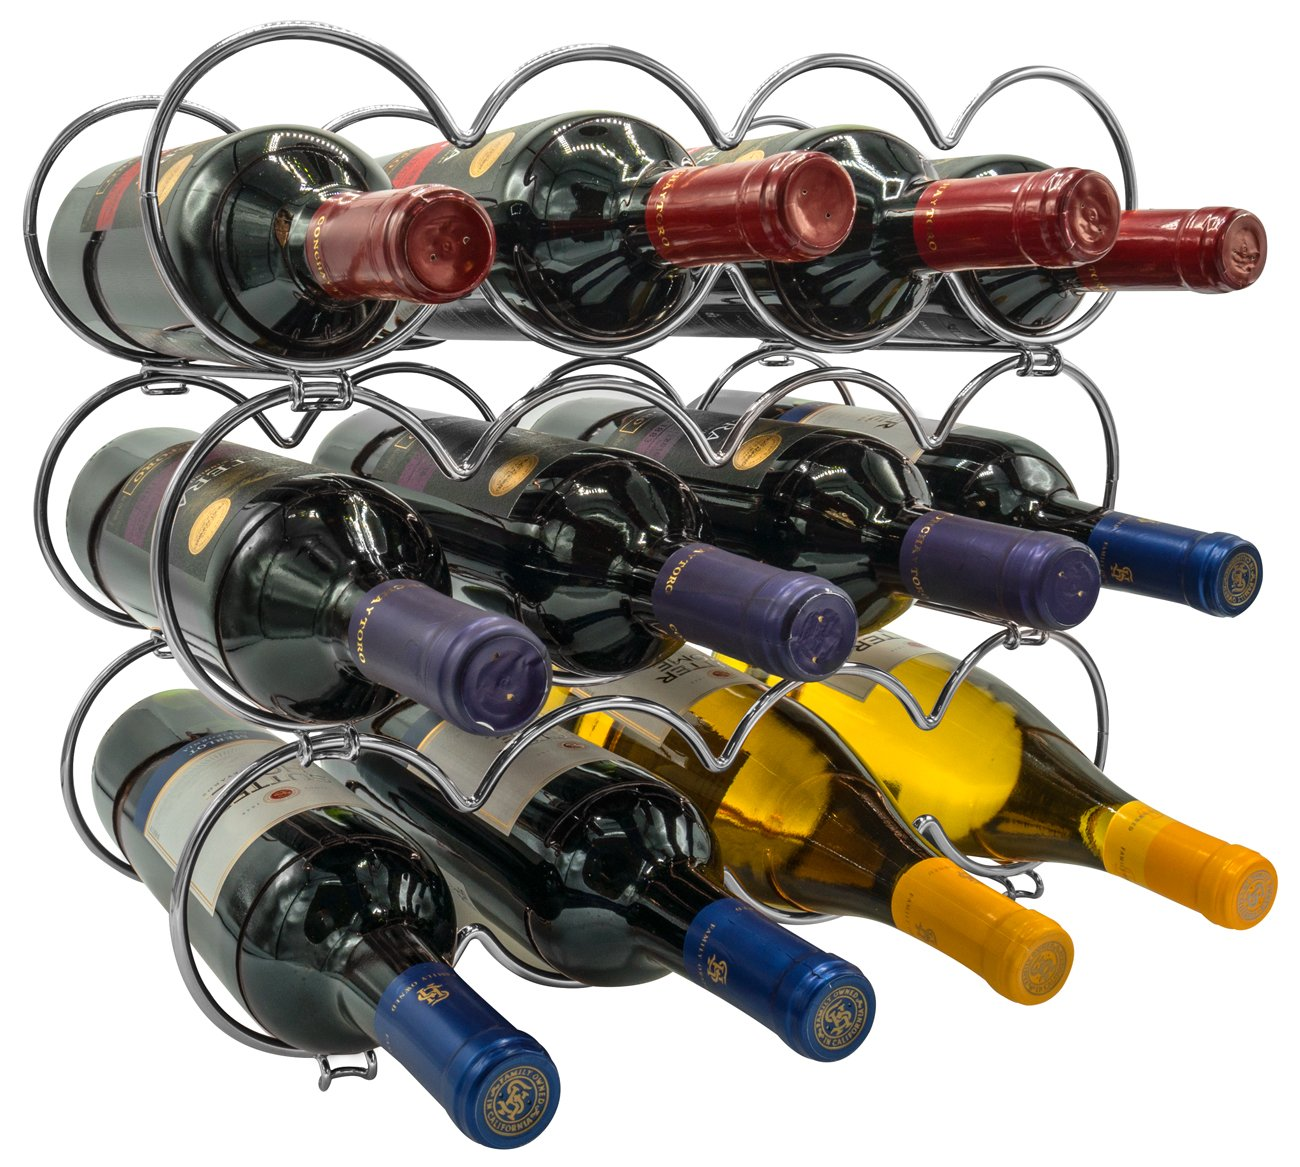 Sorbus 3-Tier Stackable Wine Rack - Round Classic Style Wine Racks for Bottles - Perfect for Bar, Wine Cellar, Basement, Cabinet, Pantry, etc - Hold 12 Bottles, Metal (Round Silver)